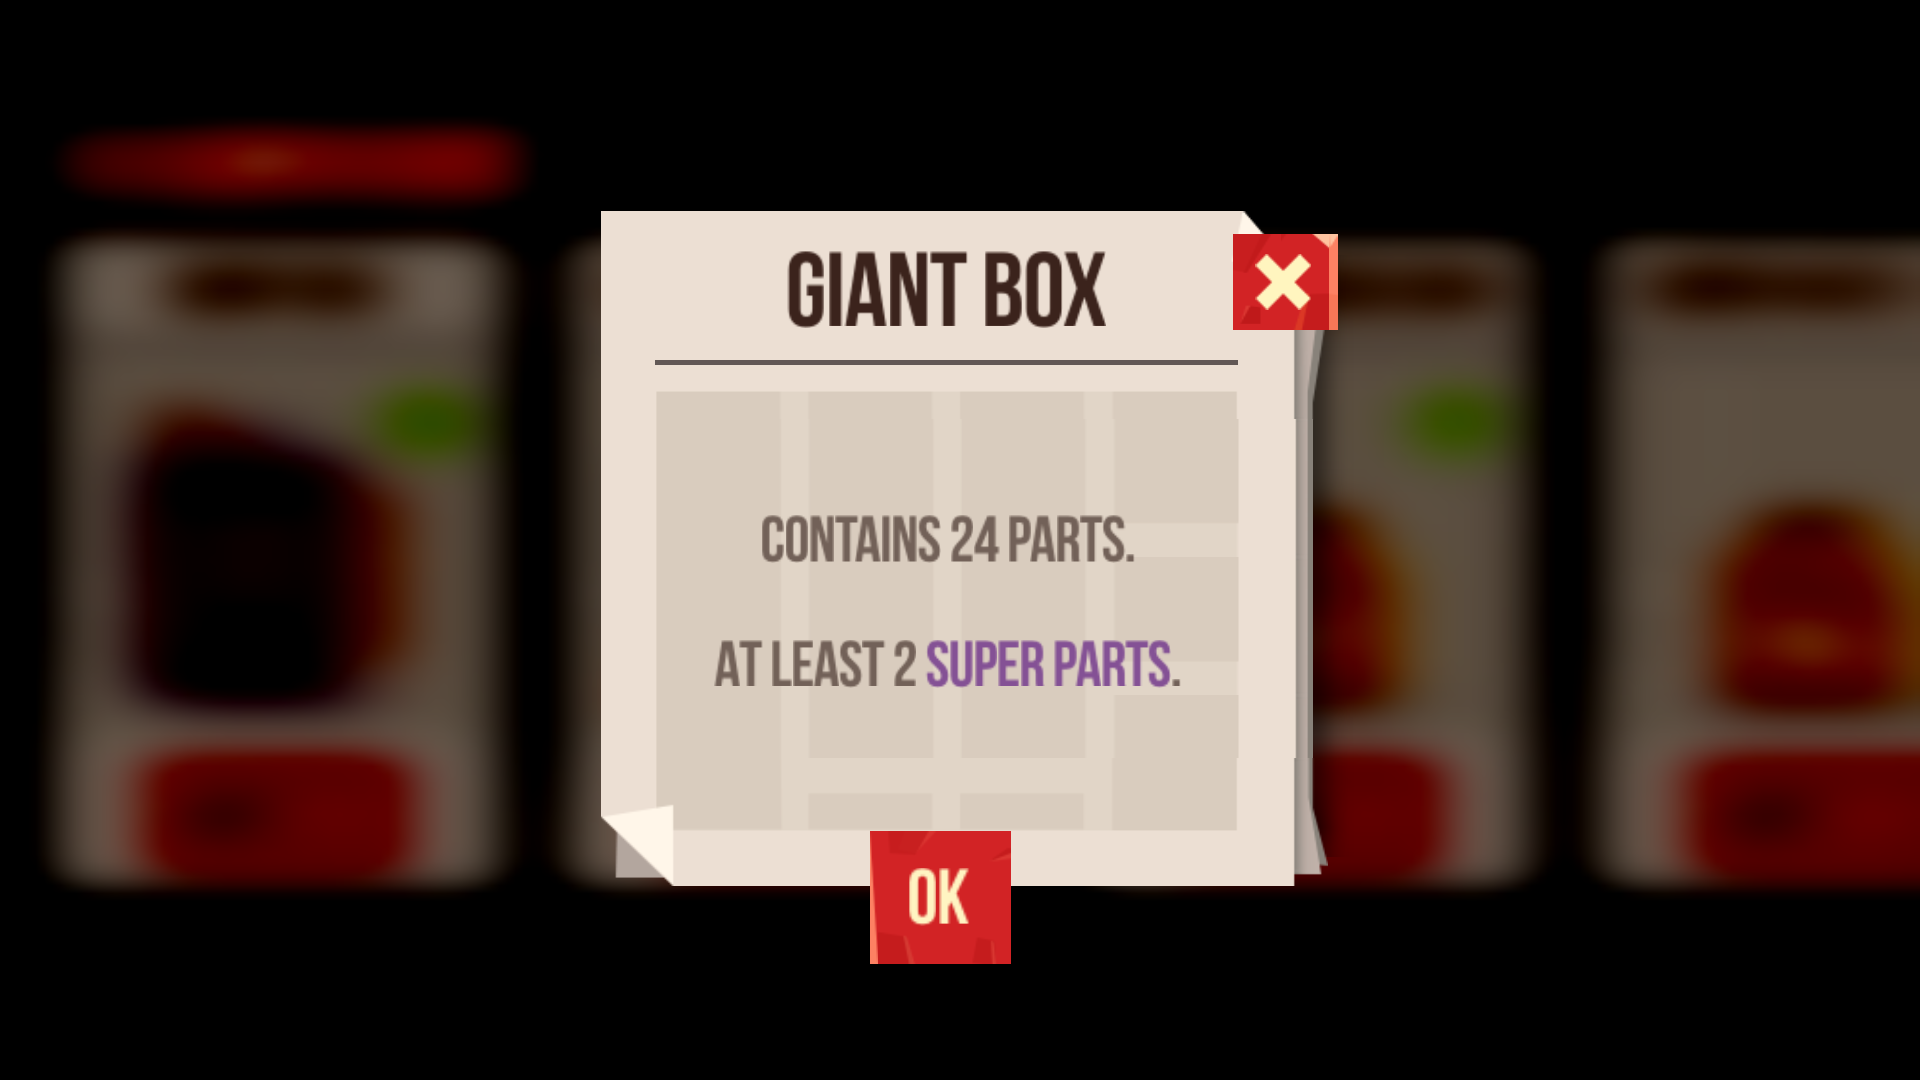 Info for Box Contents